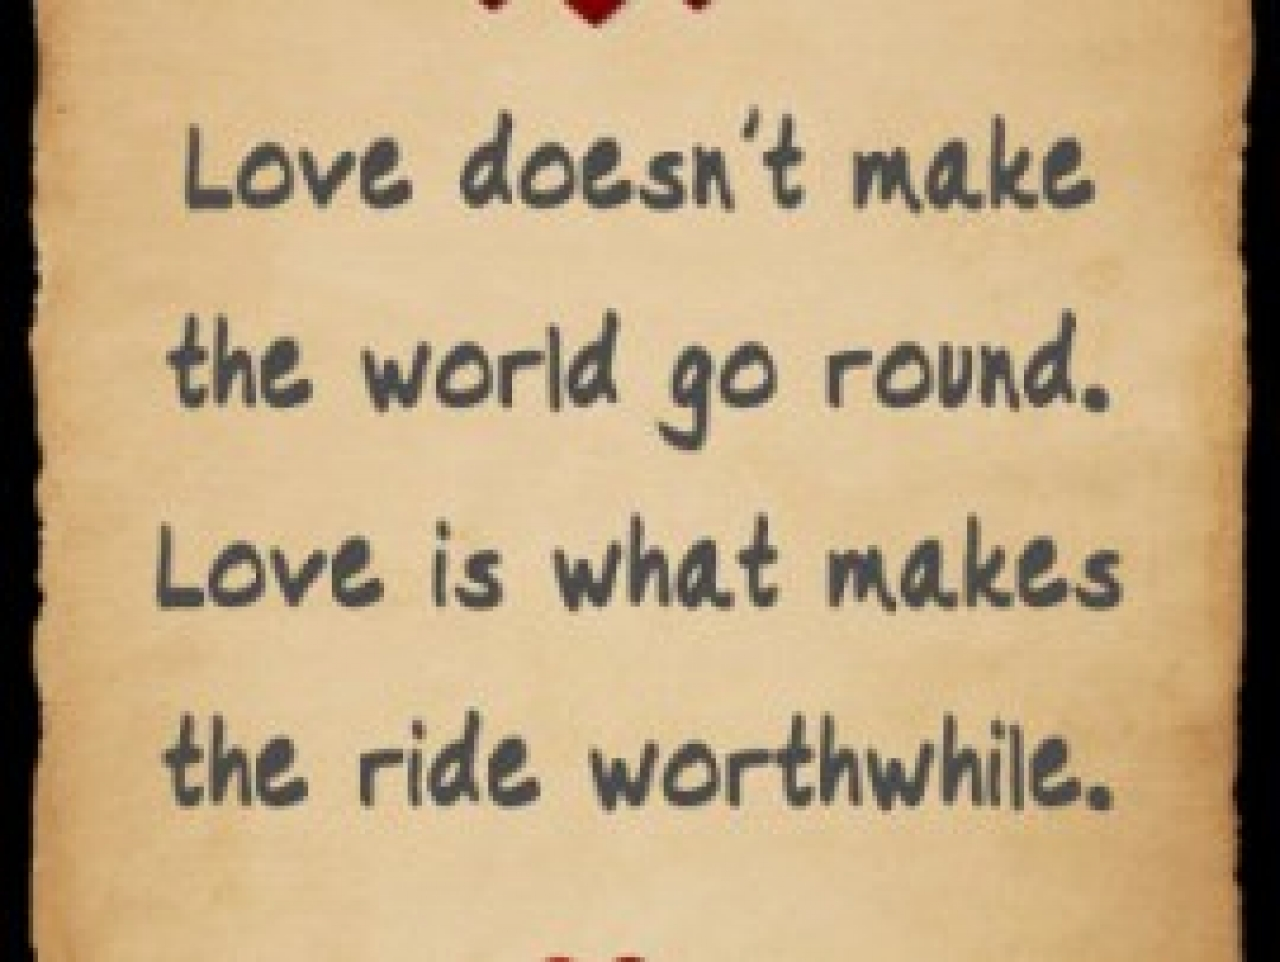 love-doesnt-make-the-world-go-round-love-is-what-makes-the-ride ...